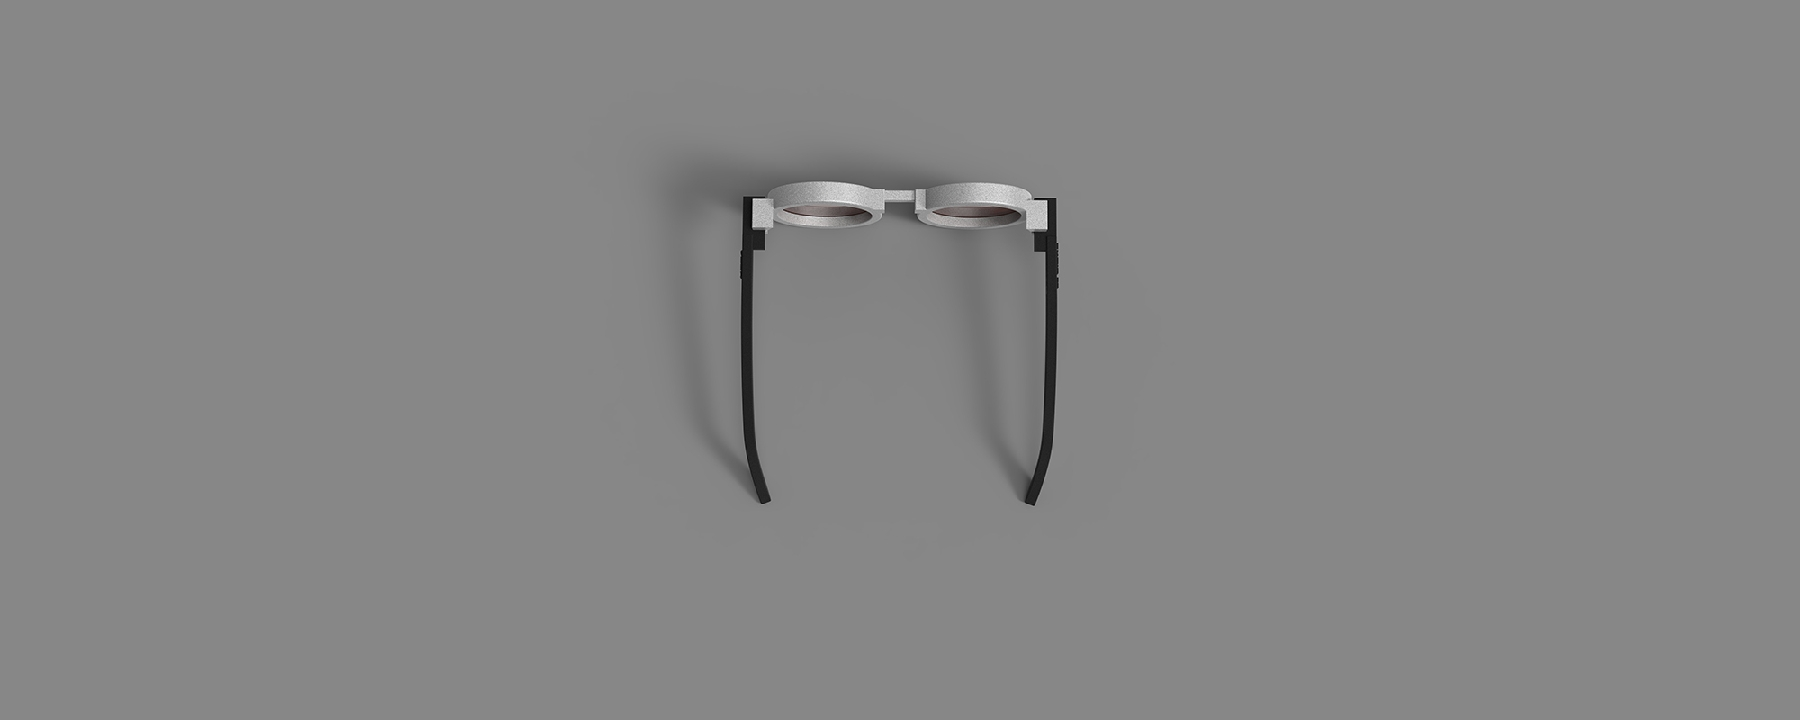 handre de la rey aluminium eyewear for 20 eight design 05